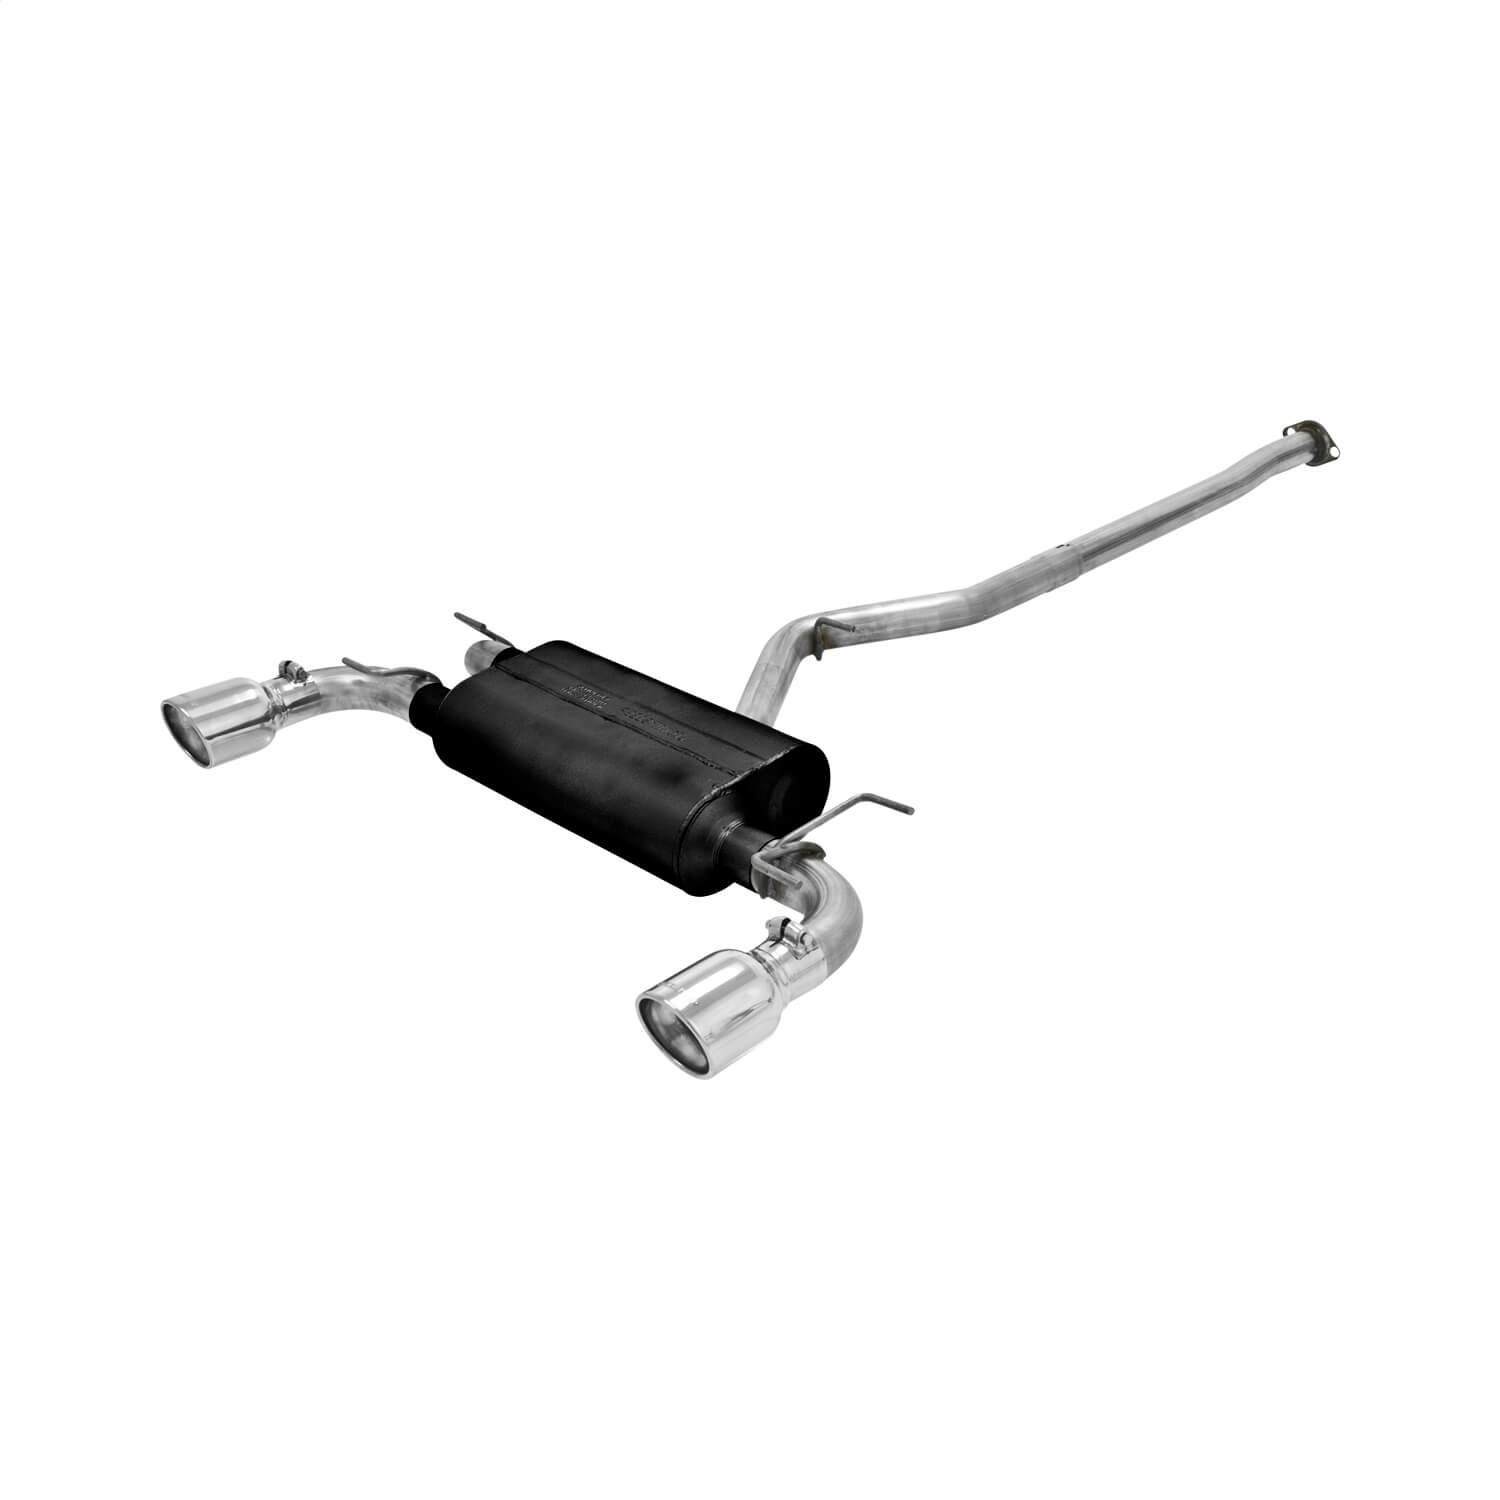 Flowmaster 817596 American Thunder Cat Back Exhaust System